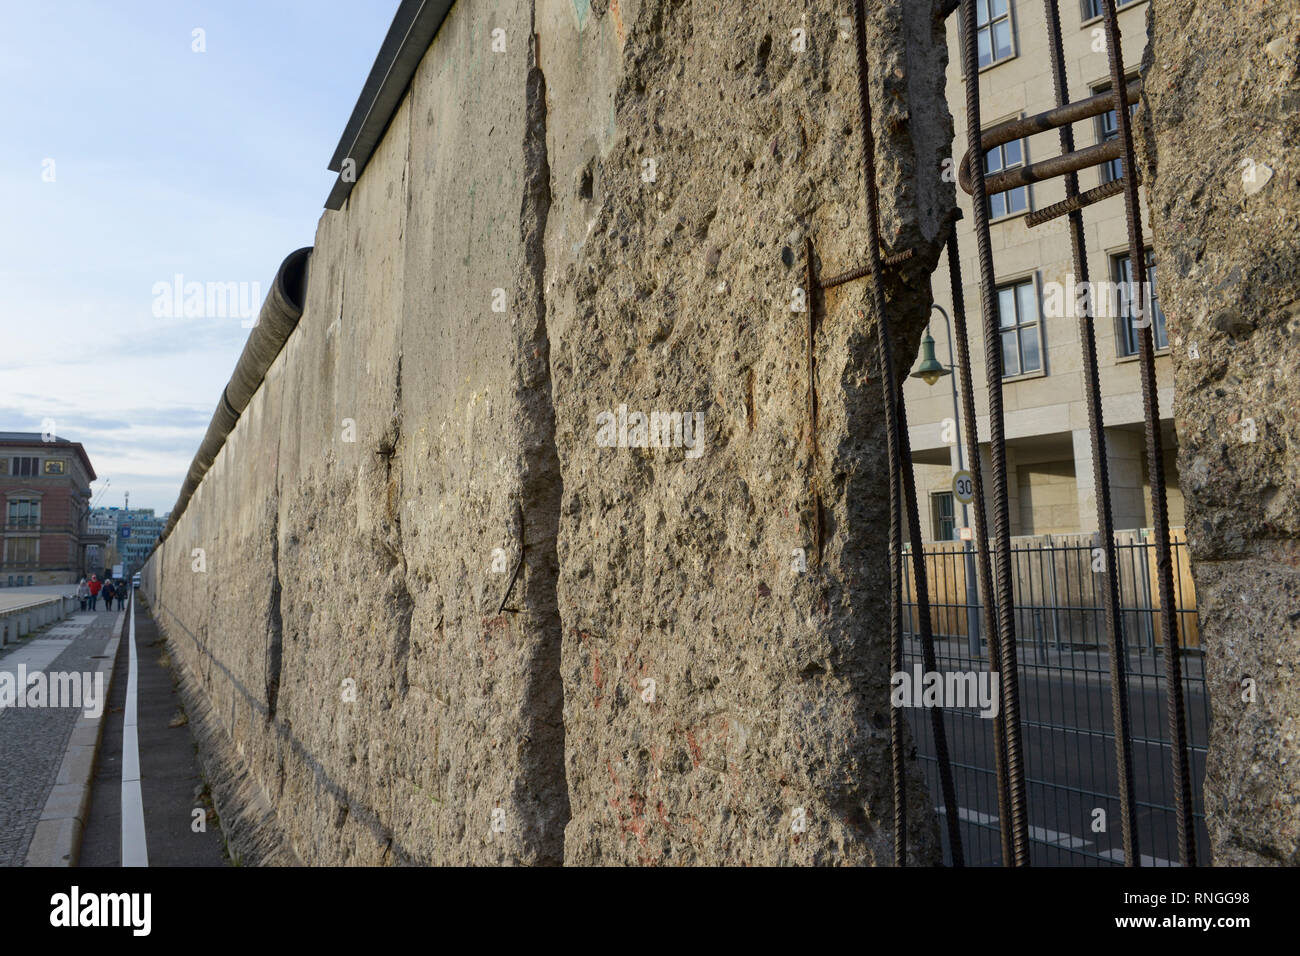 GERMANY, capital city Berlin, the wall the former border between East and West Germany / Die Mauer - Stock Image